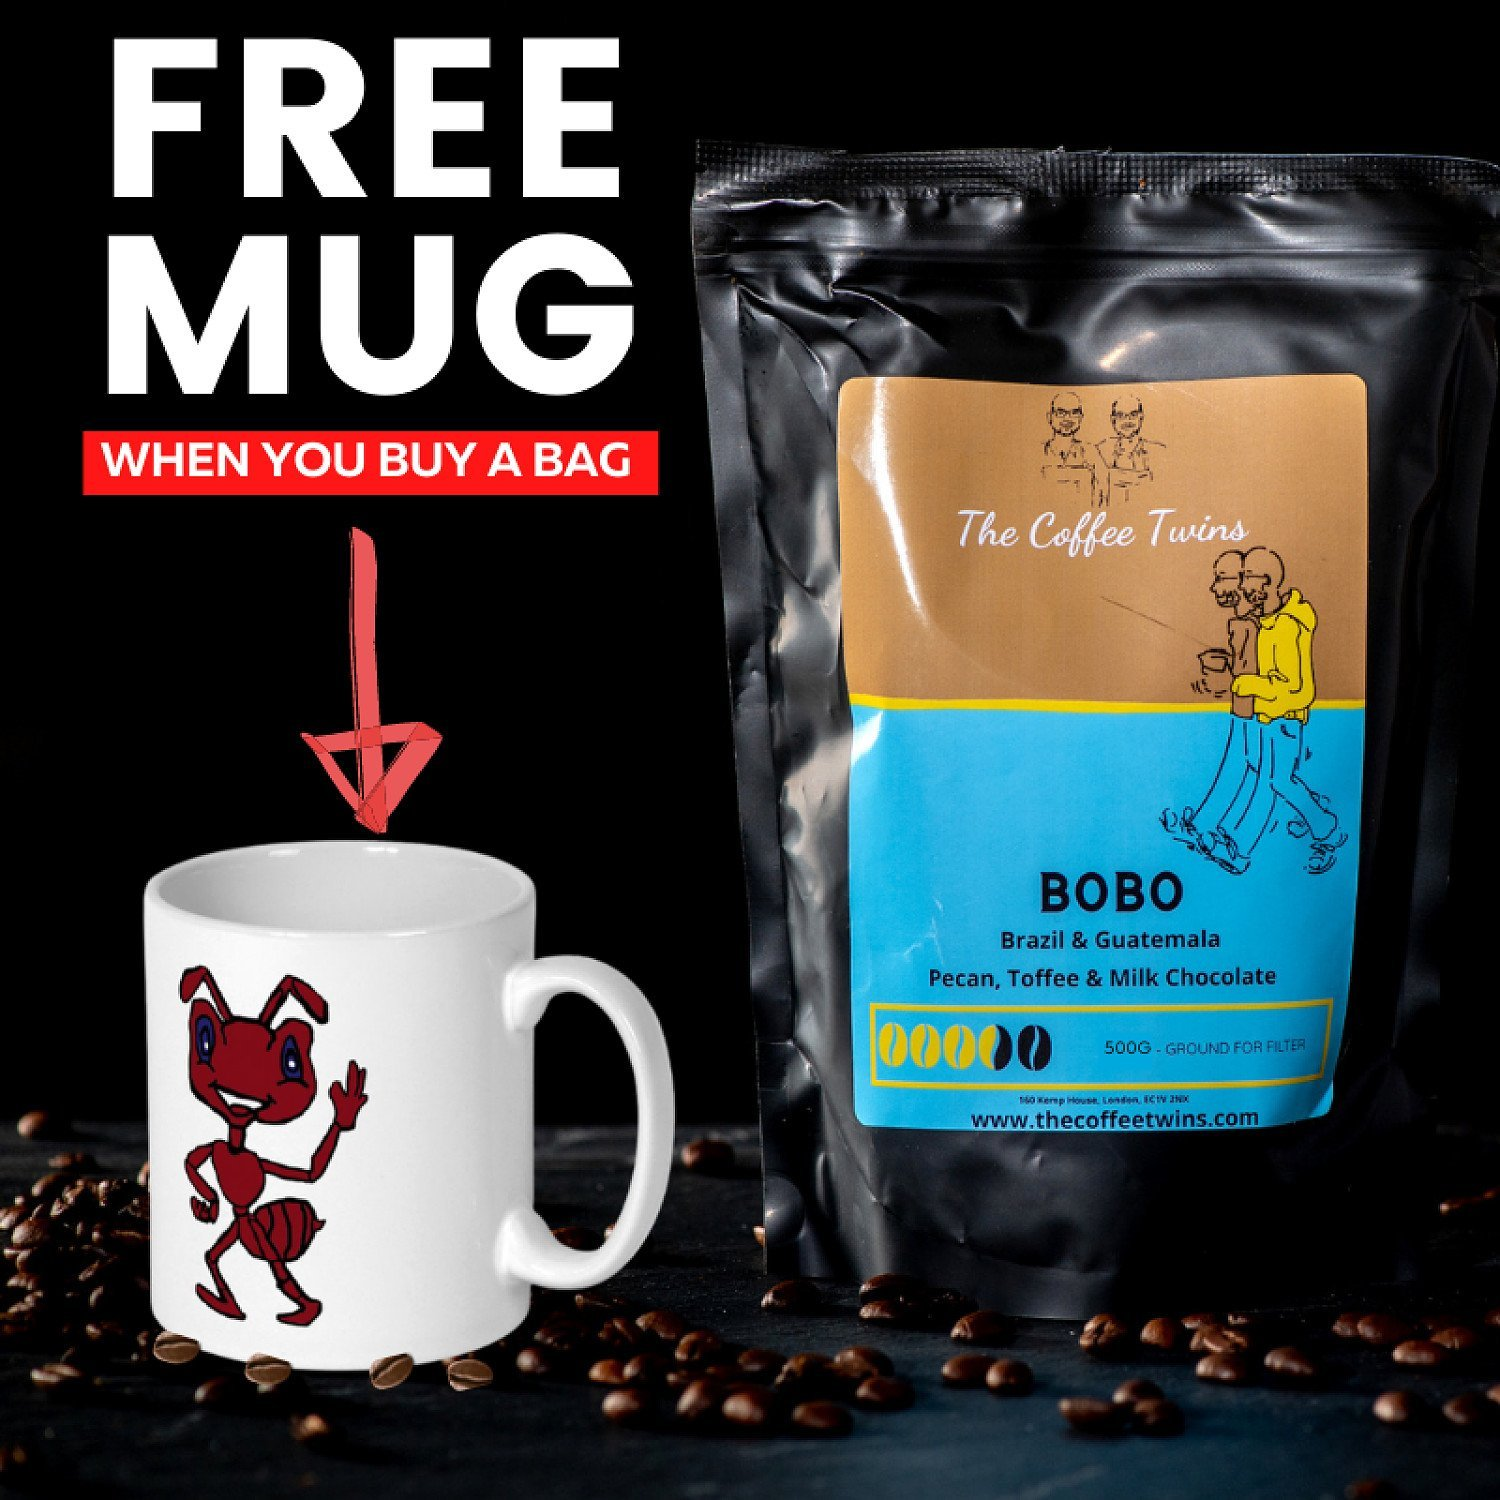 Save 50% on this LIMITED Speciality COFFEE & MUG DEAL